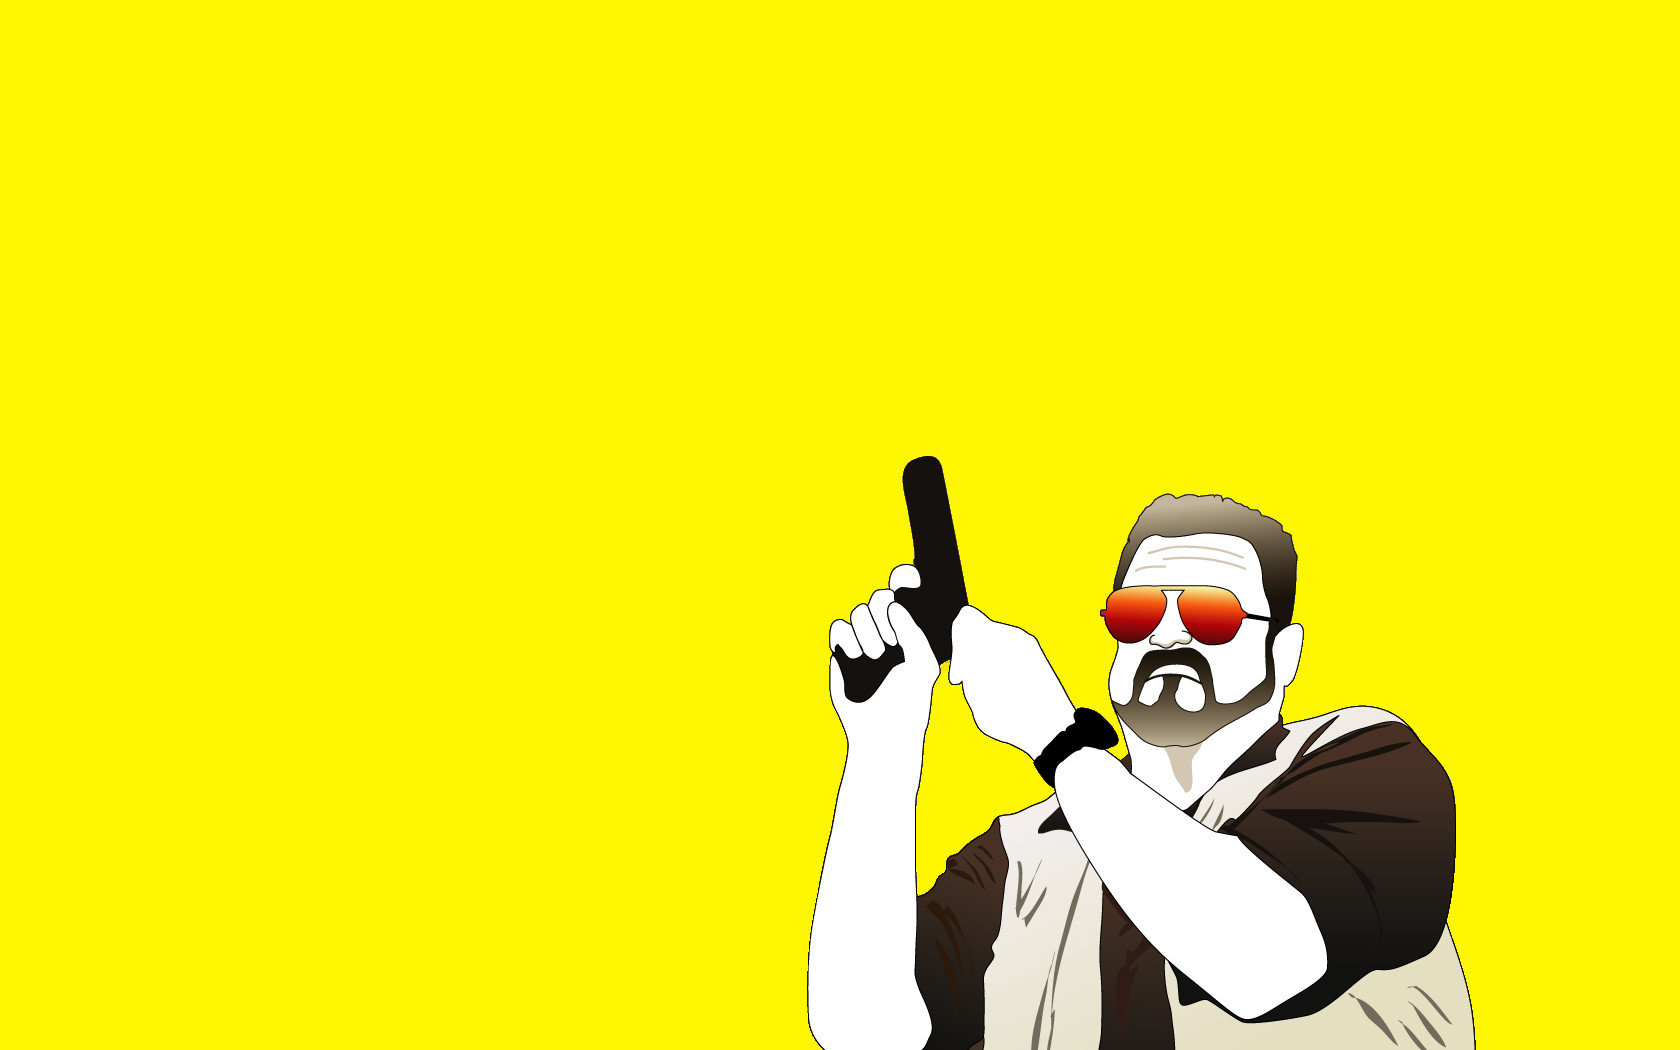 Awesome The Big Lebowski Free Wallpaper ID48231 For Hd 1680x1050 PC